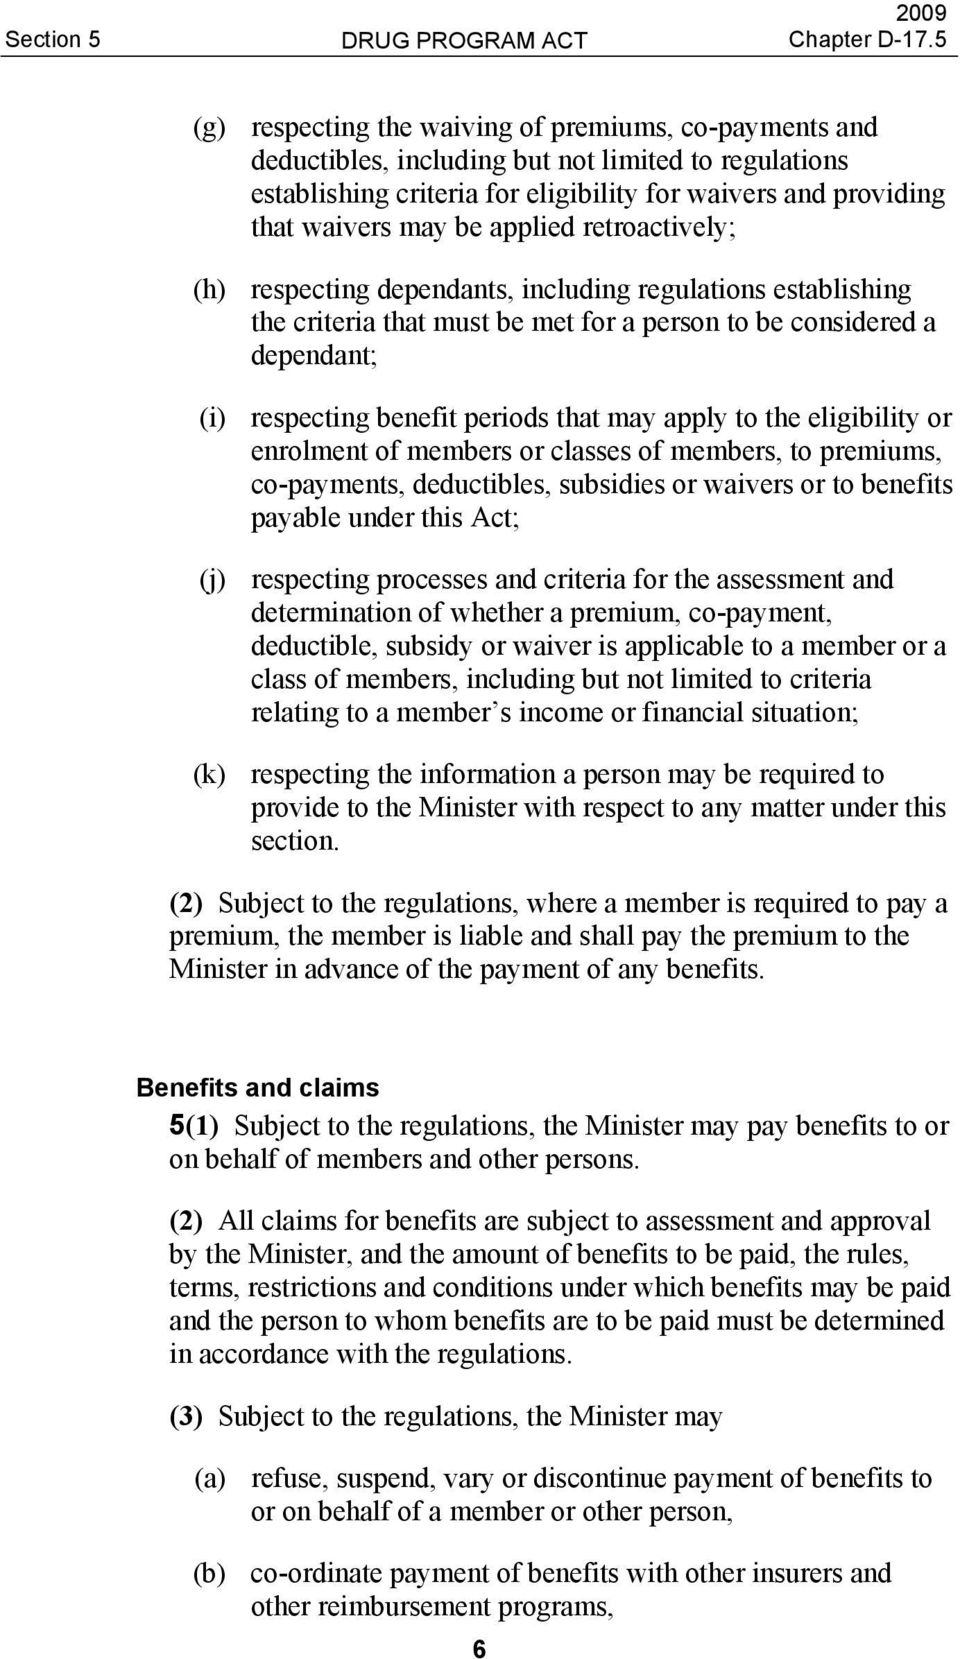 that may apply to the eligibility or enrolment of members or classes of members, to premiums, co-payments, deductibles, subsidies or waivers or to benefits payable under this Act; (j) respecting